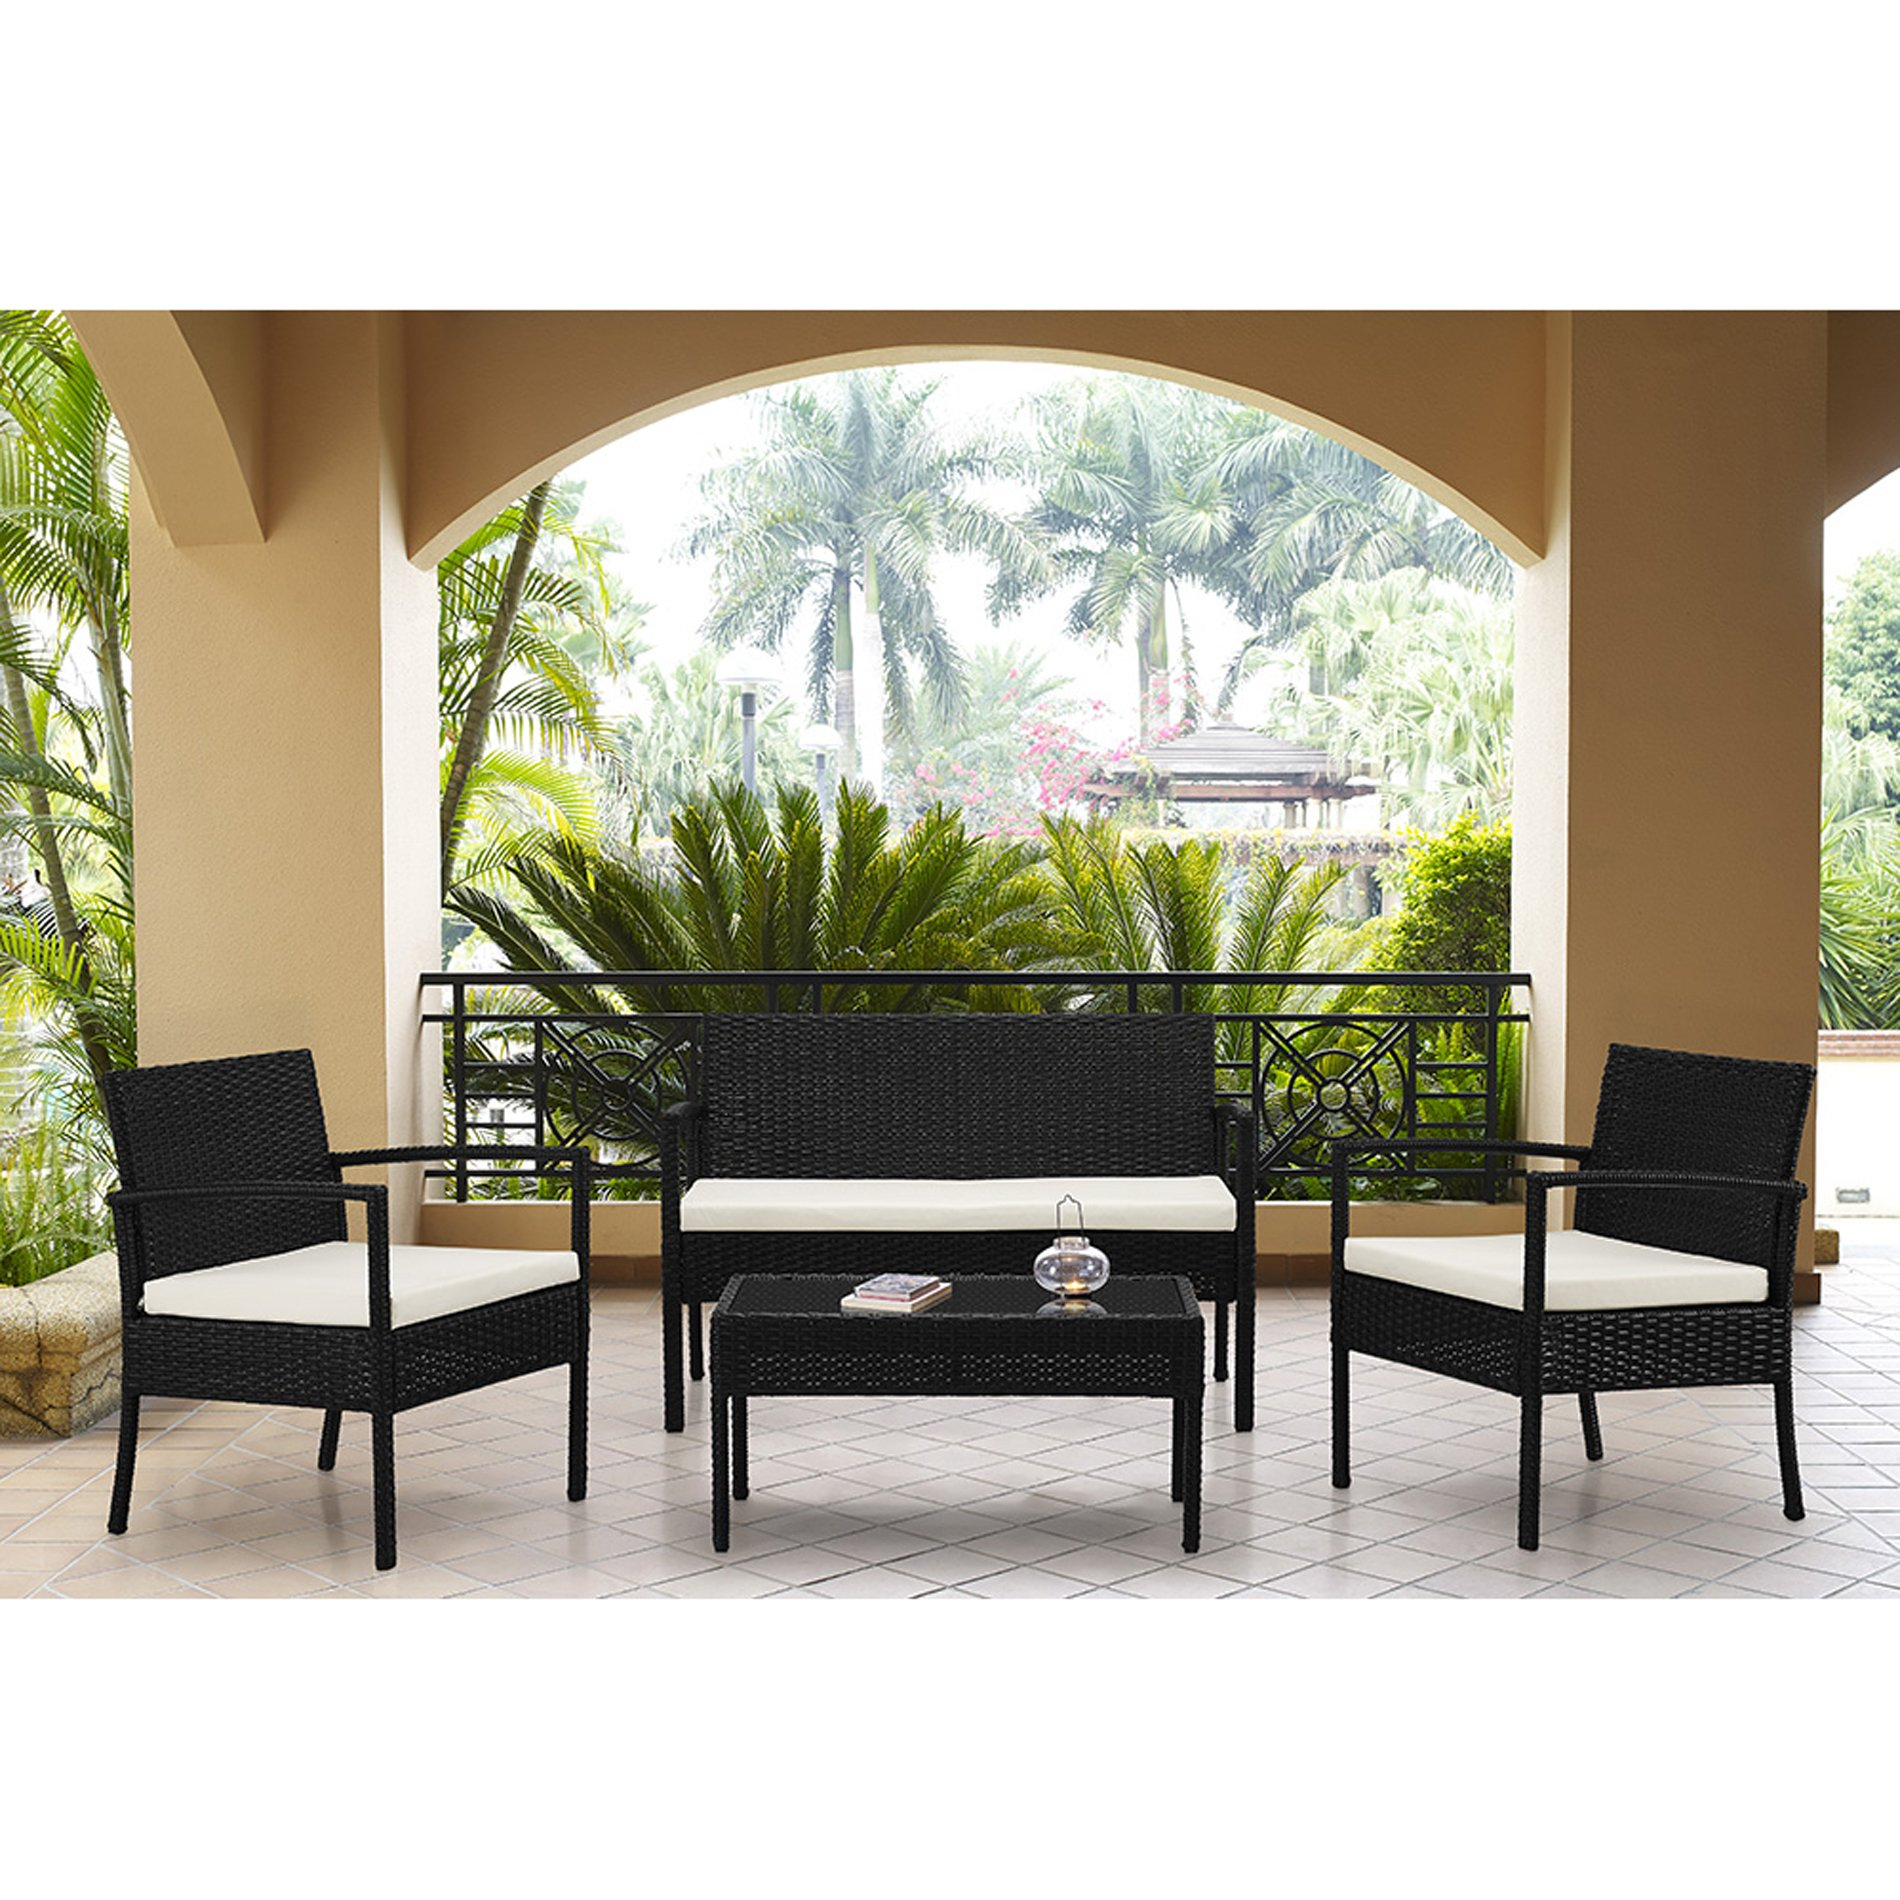 Patio Furniture Set Clearance Dining Set 4 Piece Balcony Outdoor Garden Rattan Furniture Set White Cushioned Seat Black